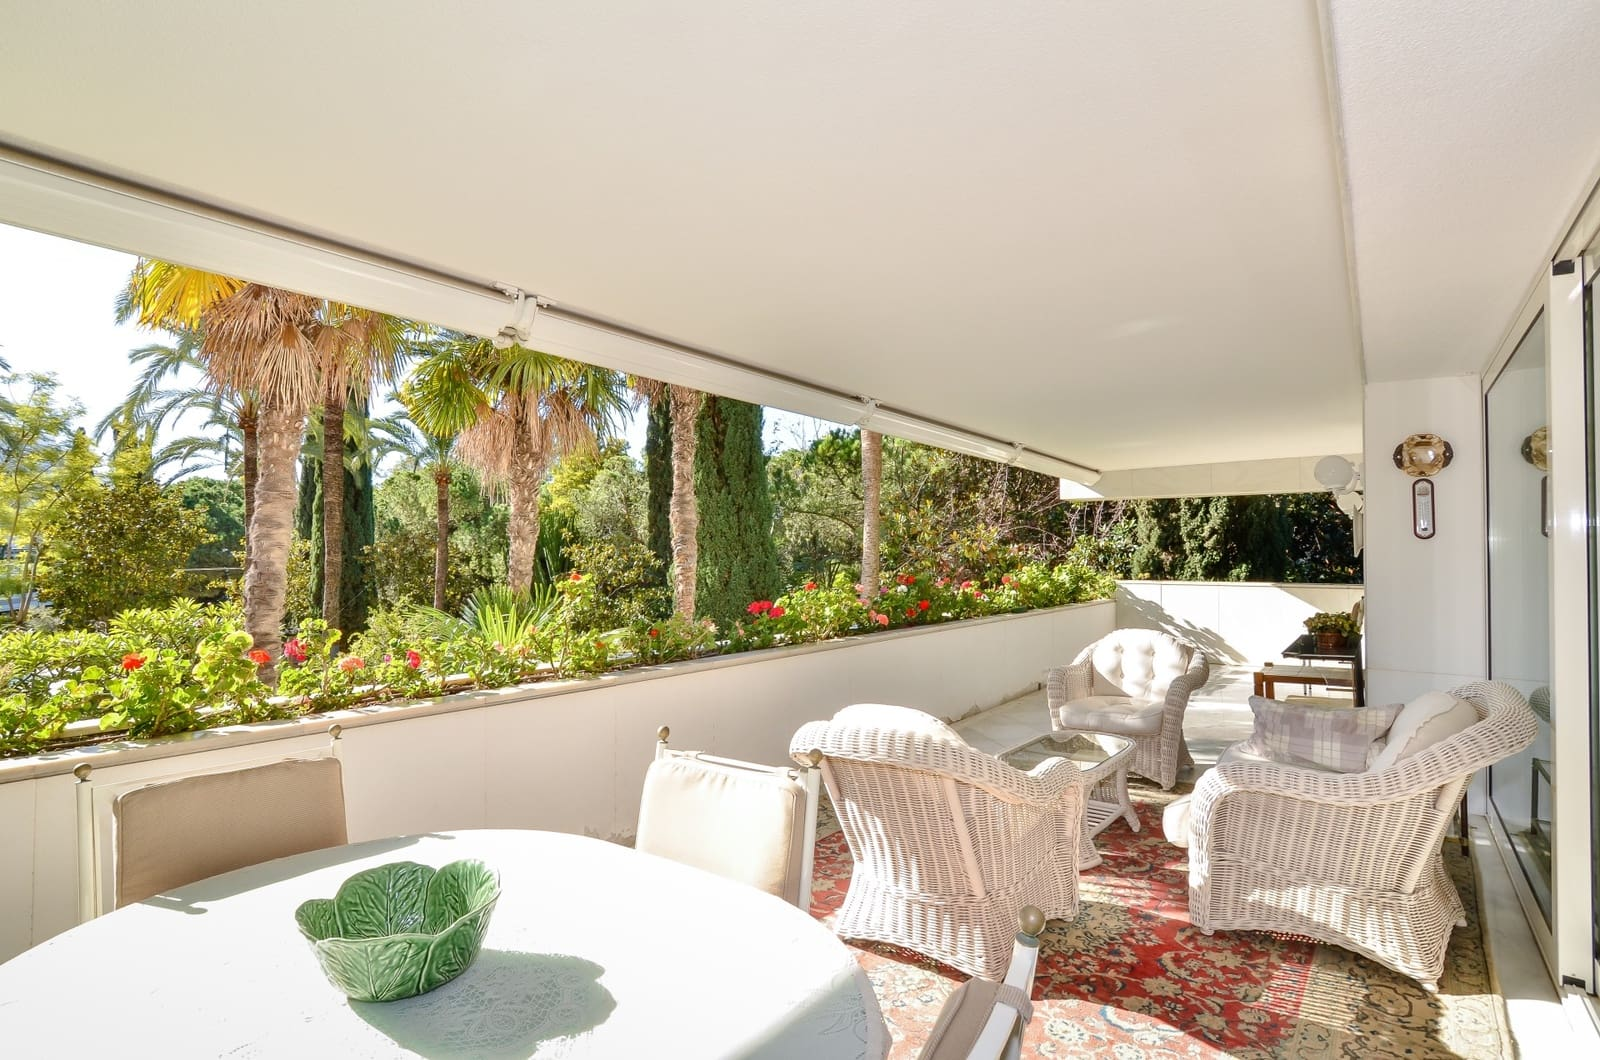 4 bedroom Apartment for sale in Marbella with pool garage - € 2,300,000 (Ref: 3658413)